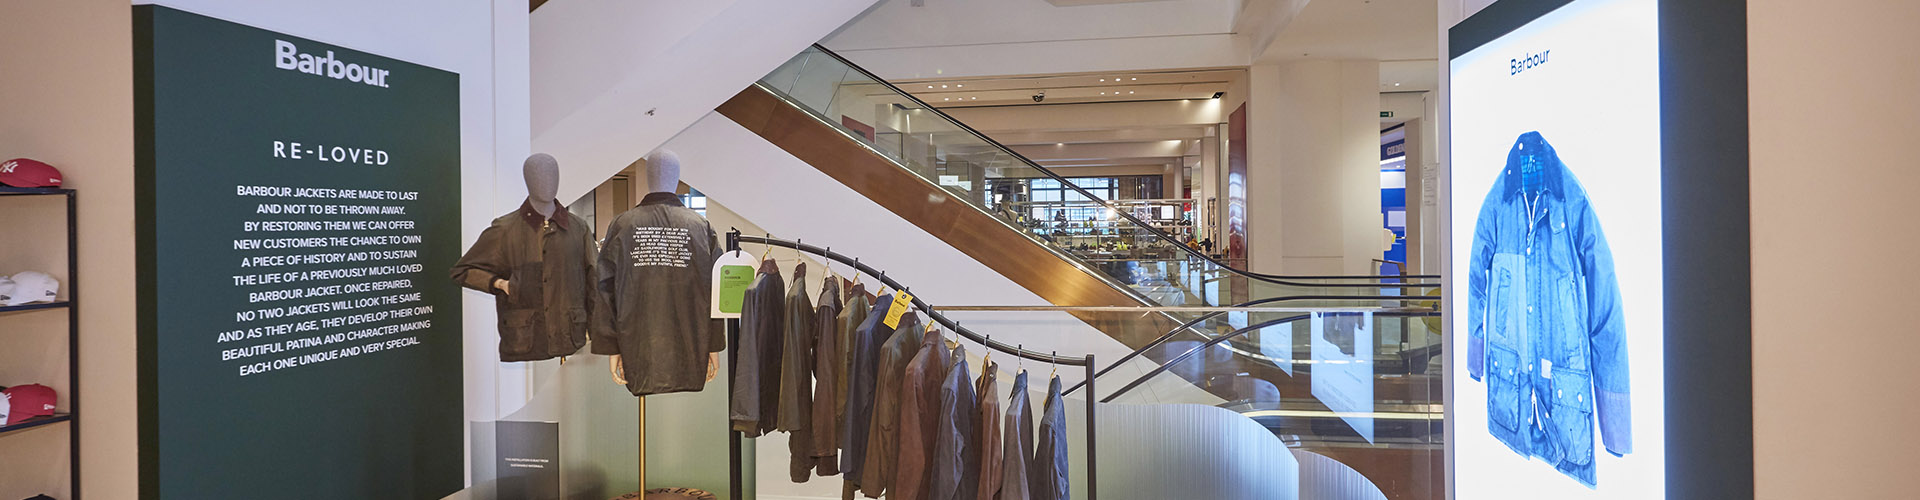 Barbour Re-loved is Launching at Selfridges